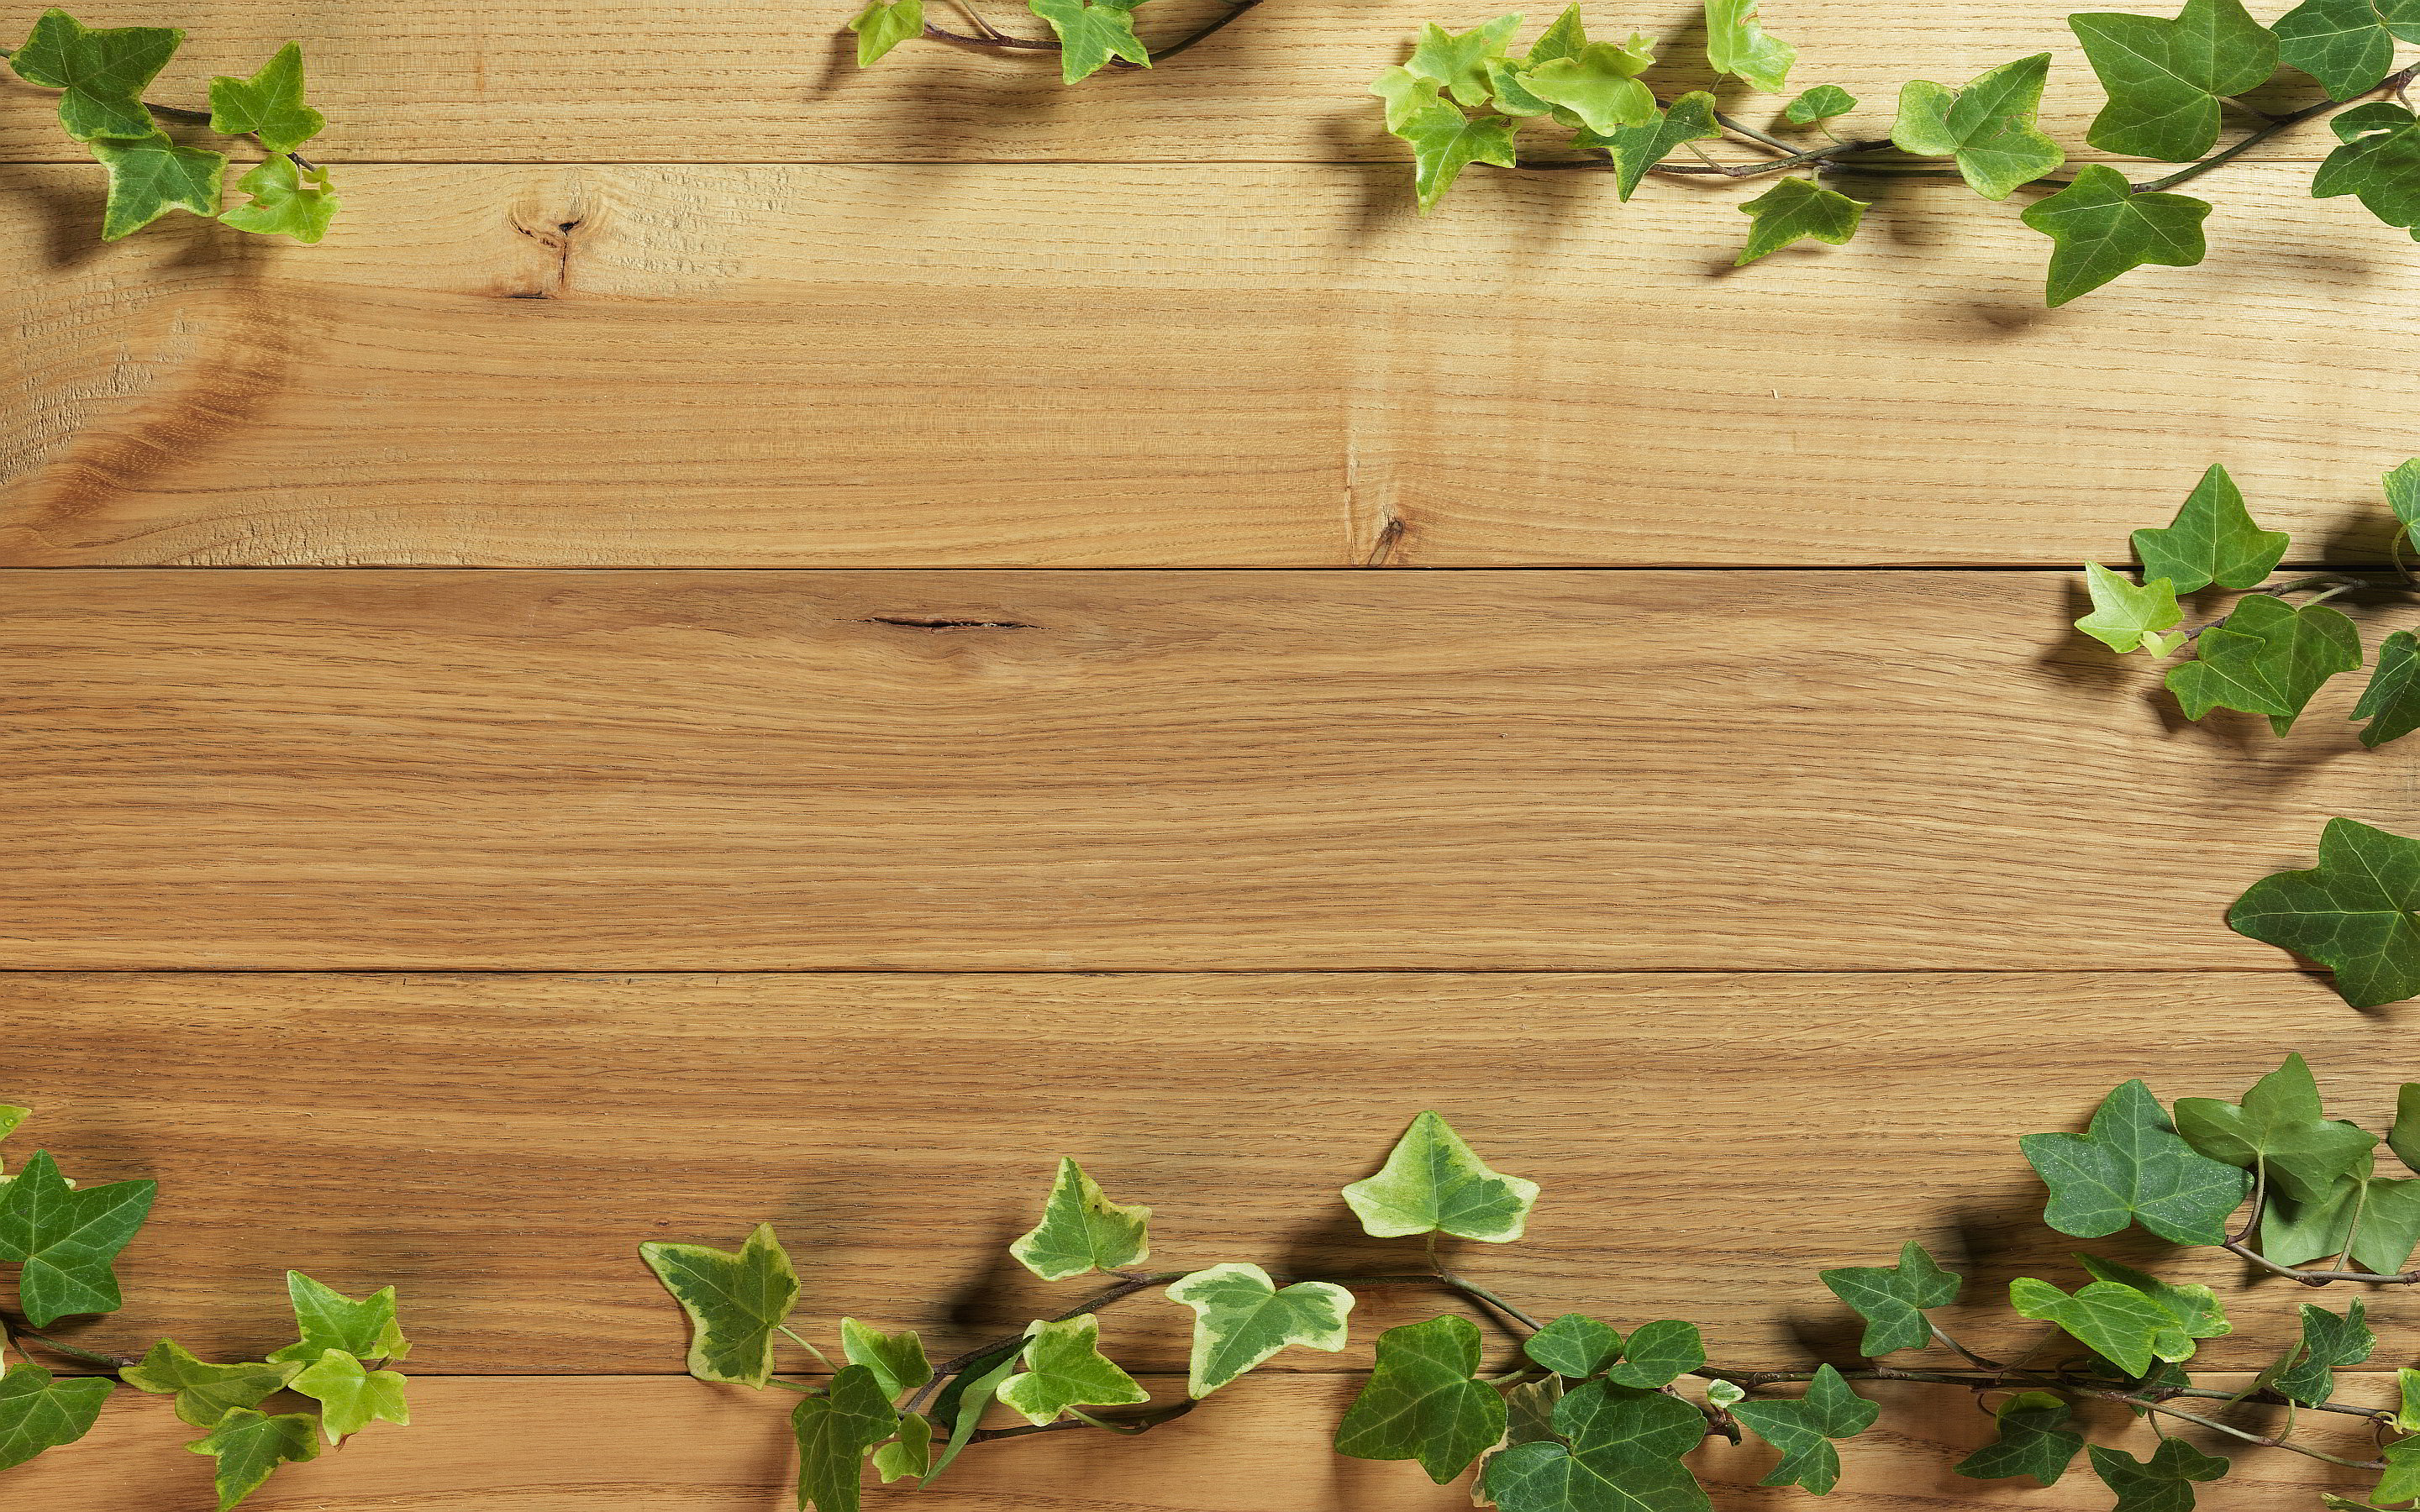 8822407-plant-wood-background